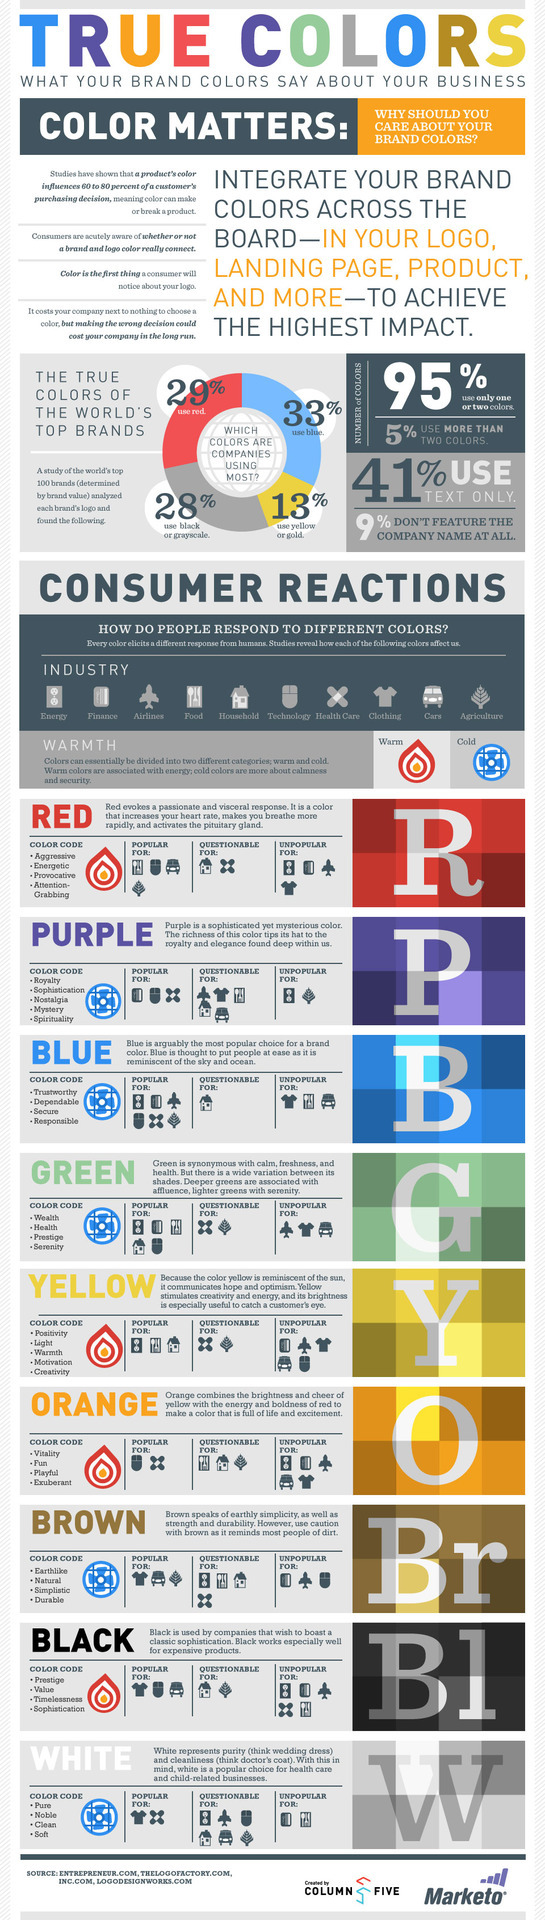 Think color doesn't matter? It does…. How do you use color in  your brand? Share your ideas socially.  ***  post by Jordan benShea Established by Jordan benShea, SkyView Projects is a boutique marketing firm based in Santa Barbara, Ca. We believe your strength is your story, we share your story through innovative marketing initiatives. The SkyView Projects team provides comprehensive marketing solutions with clients near and far. Learn more at SkyViewProjects.com.